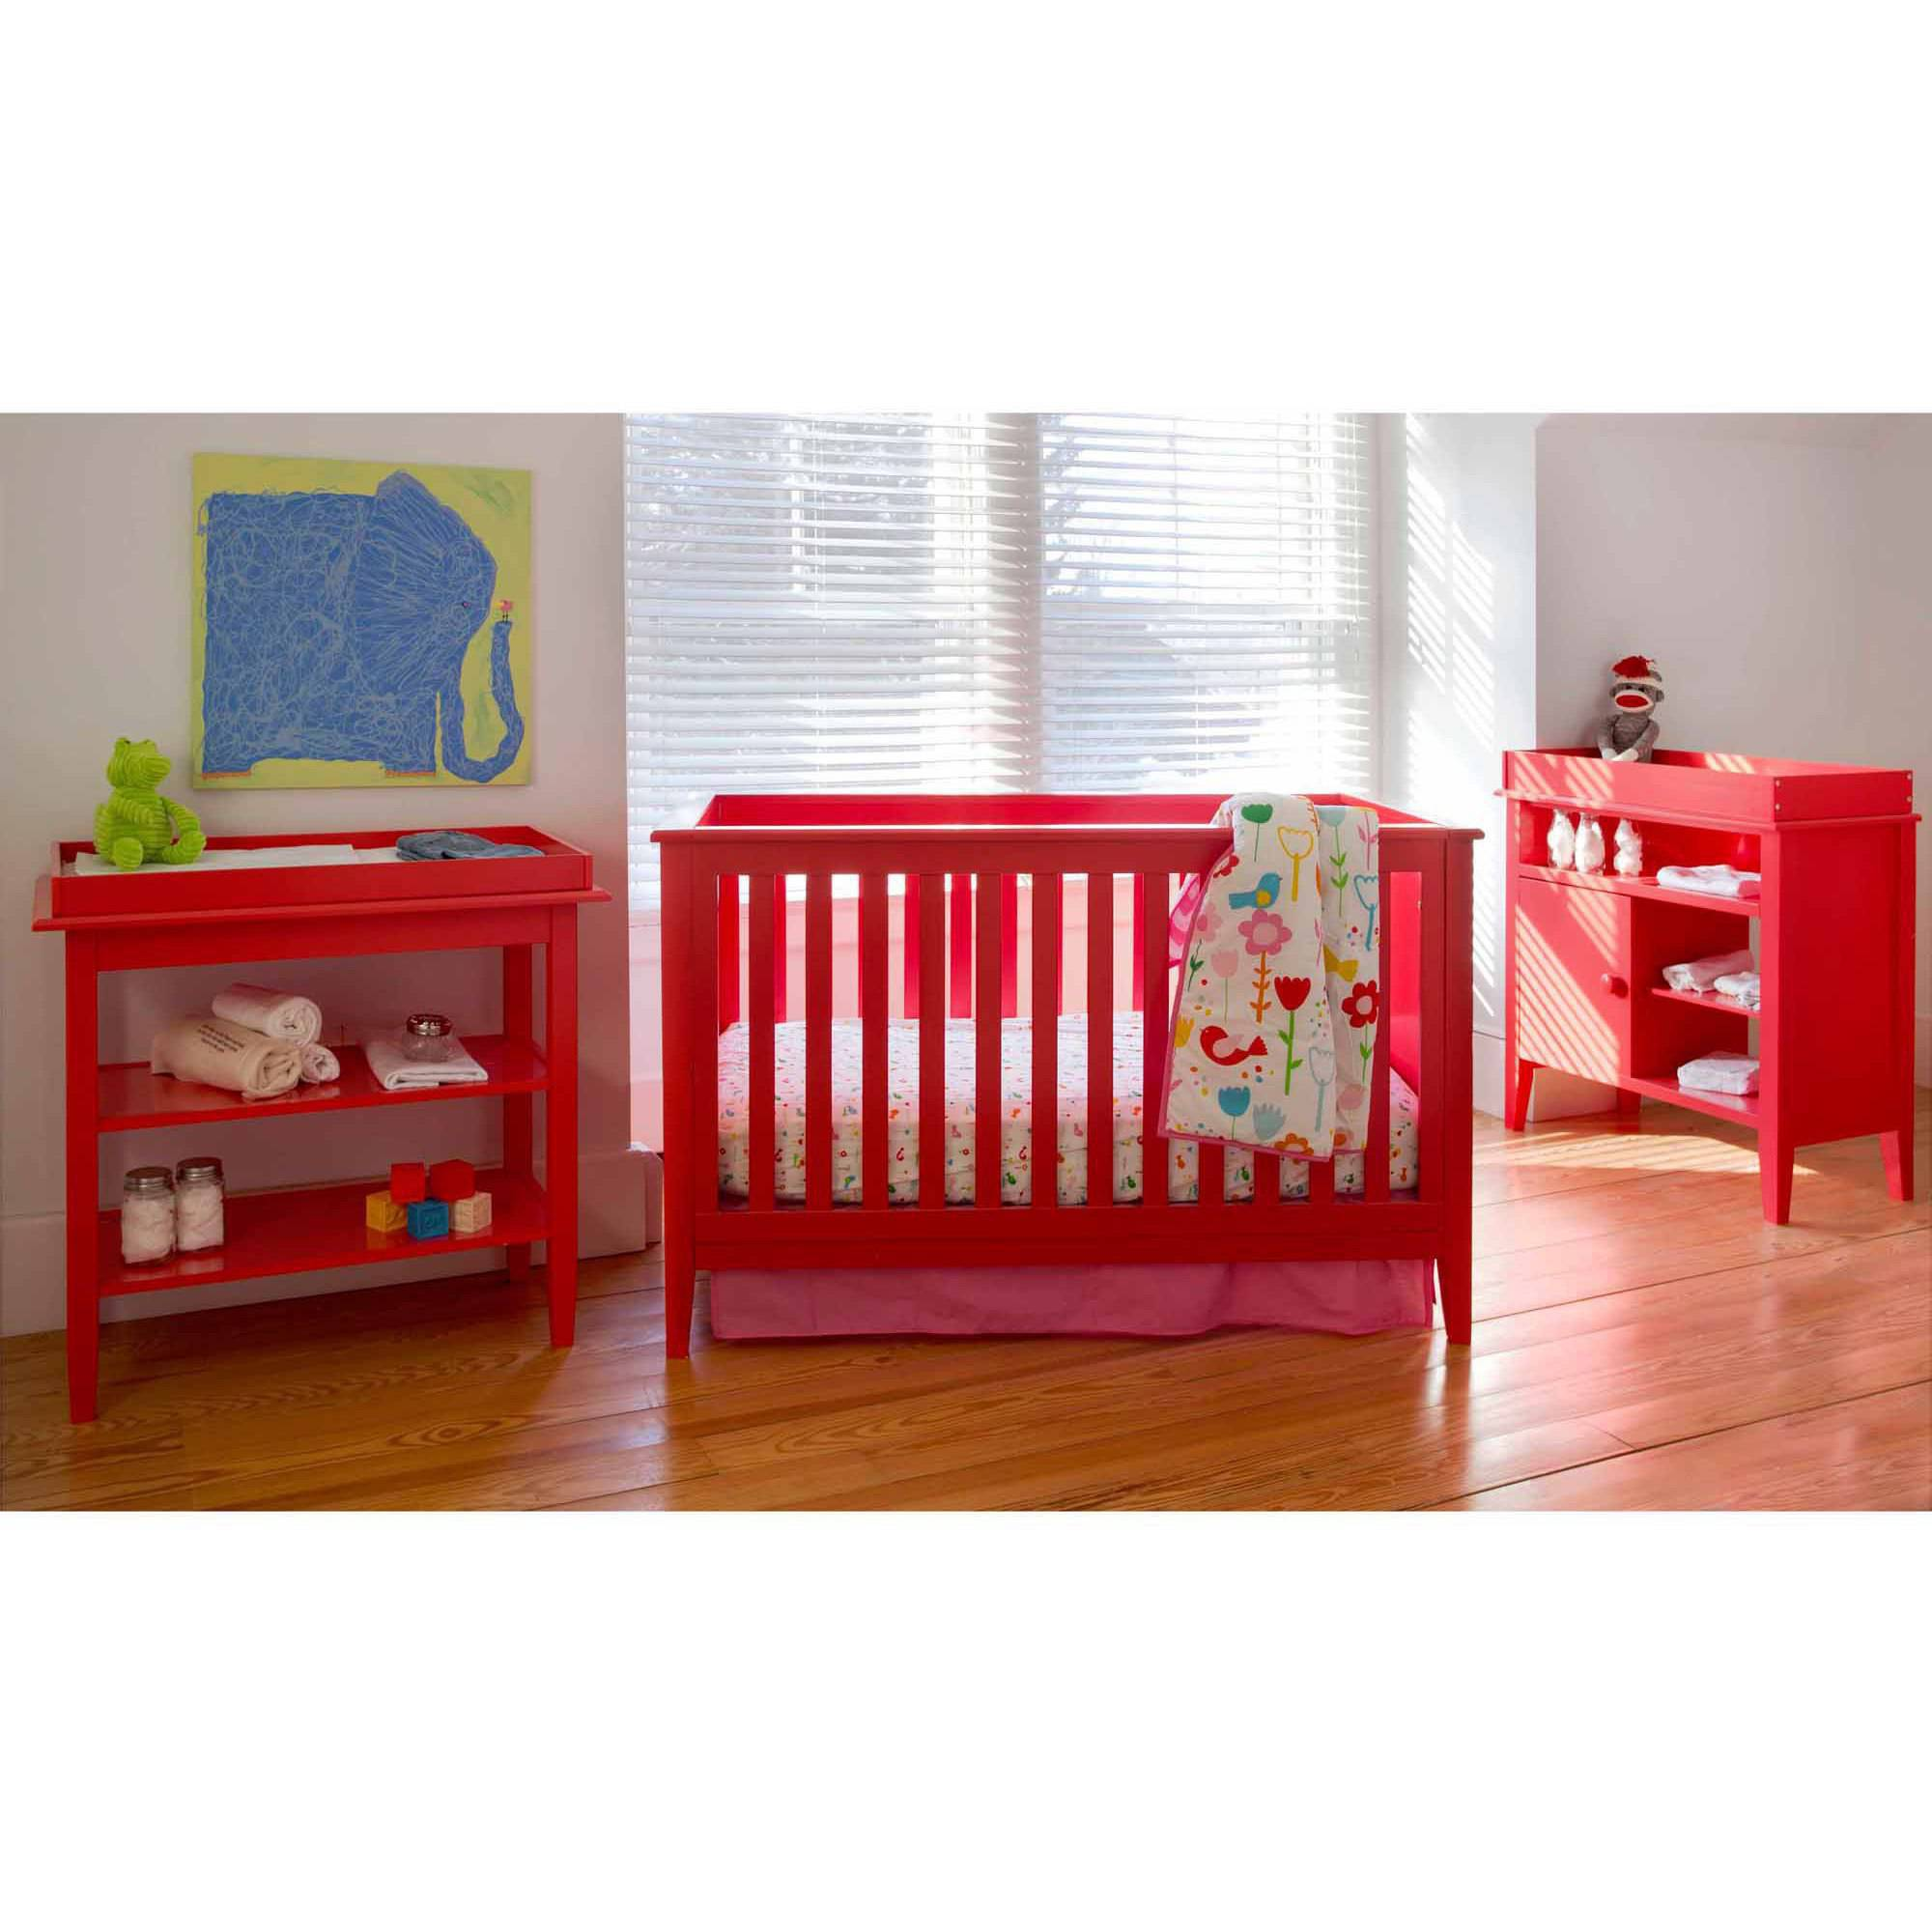 Lolly & Me Color Me 3-in-1 Convertible Crib Lollipop Red